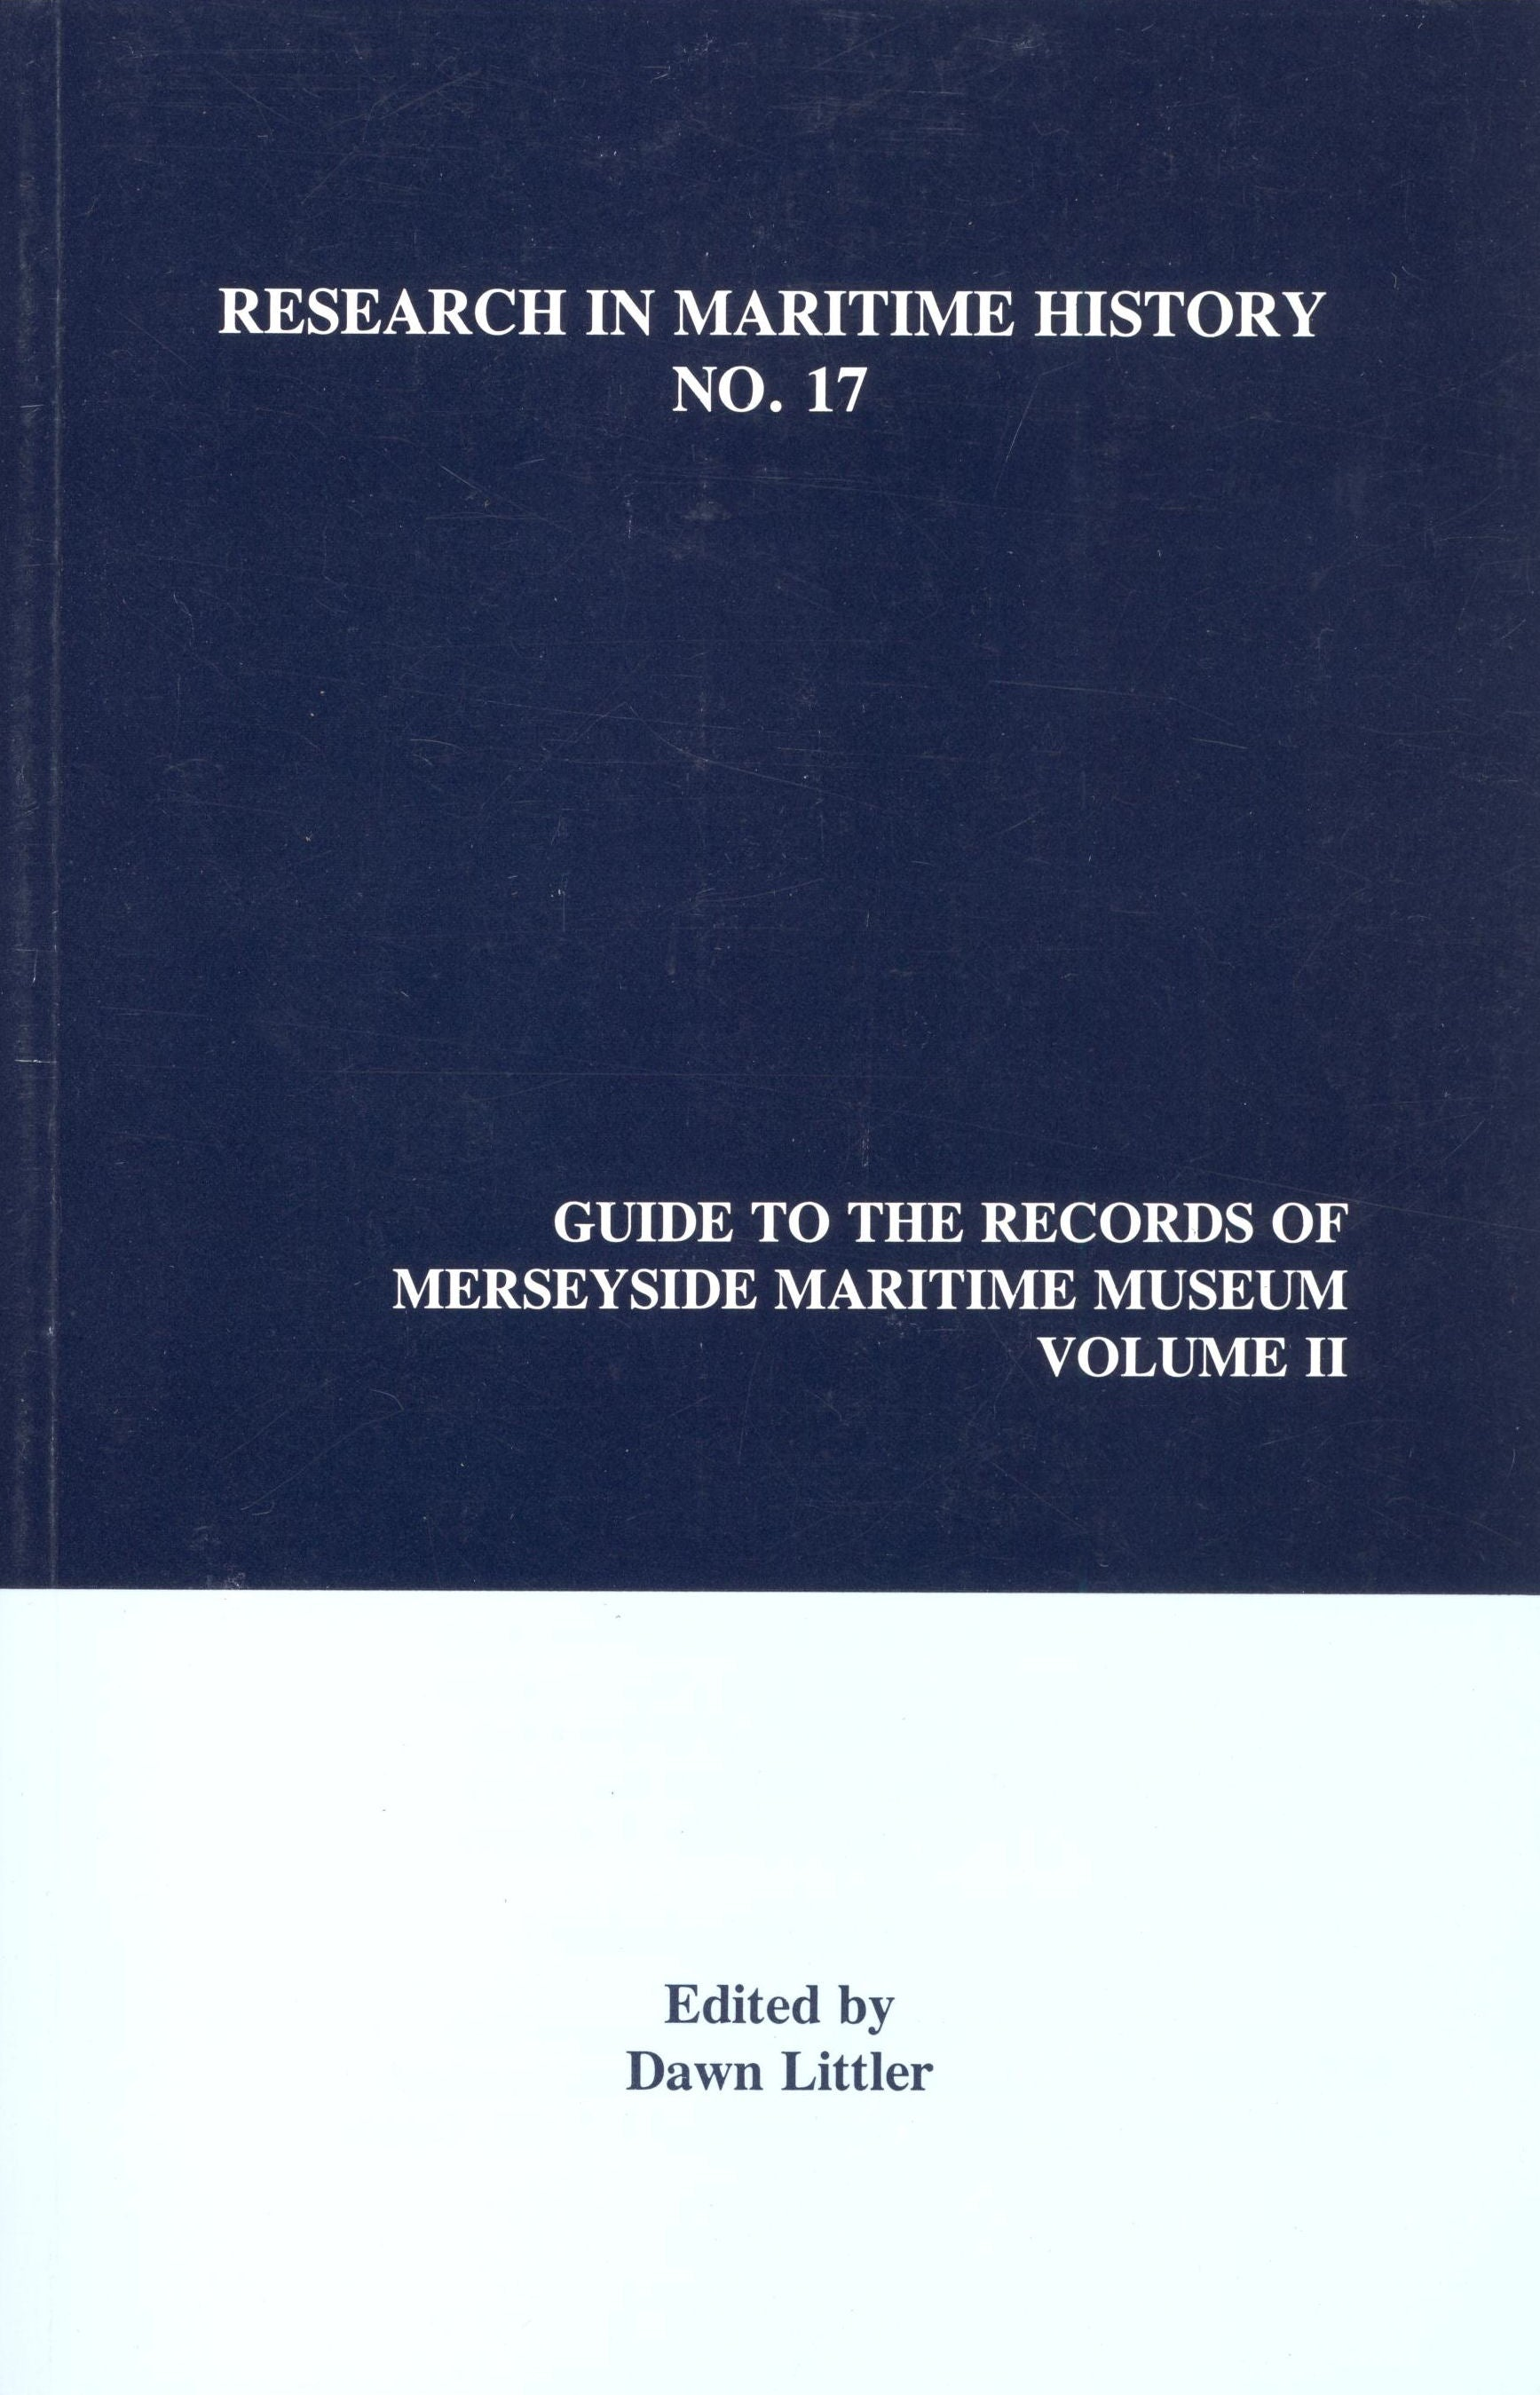 Guide to the Records of Merseyside Maritime Museum, Volume 2